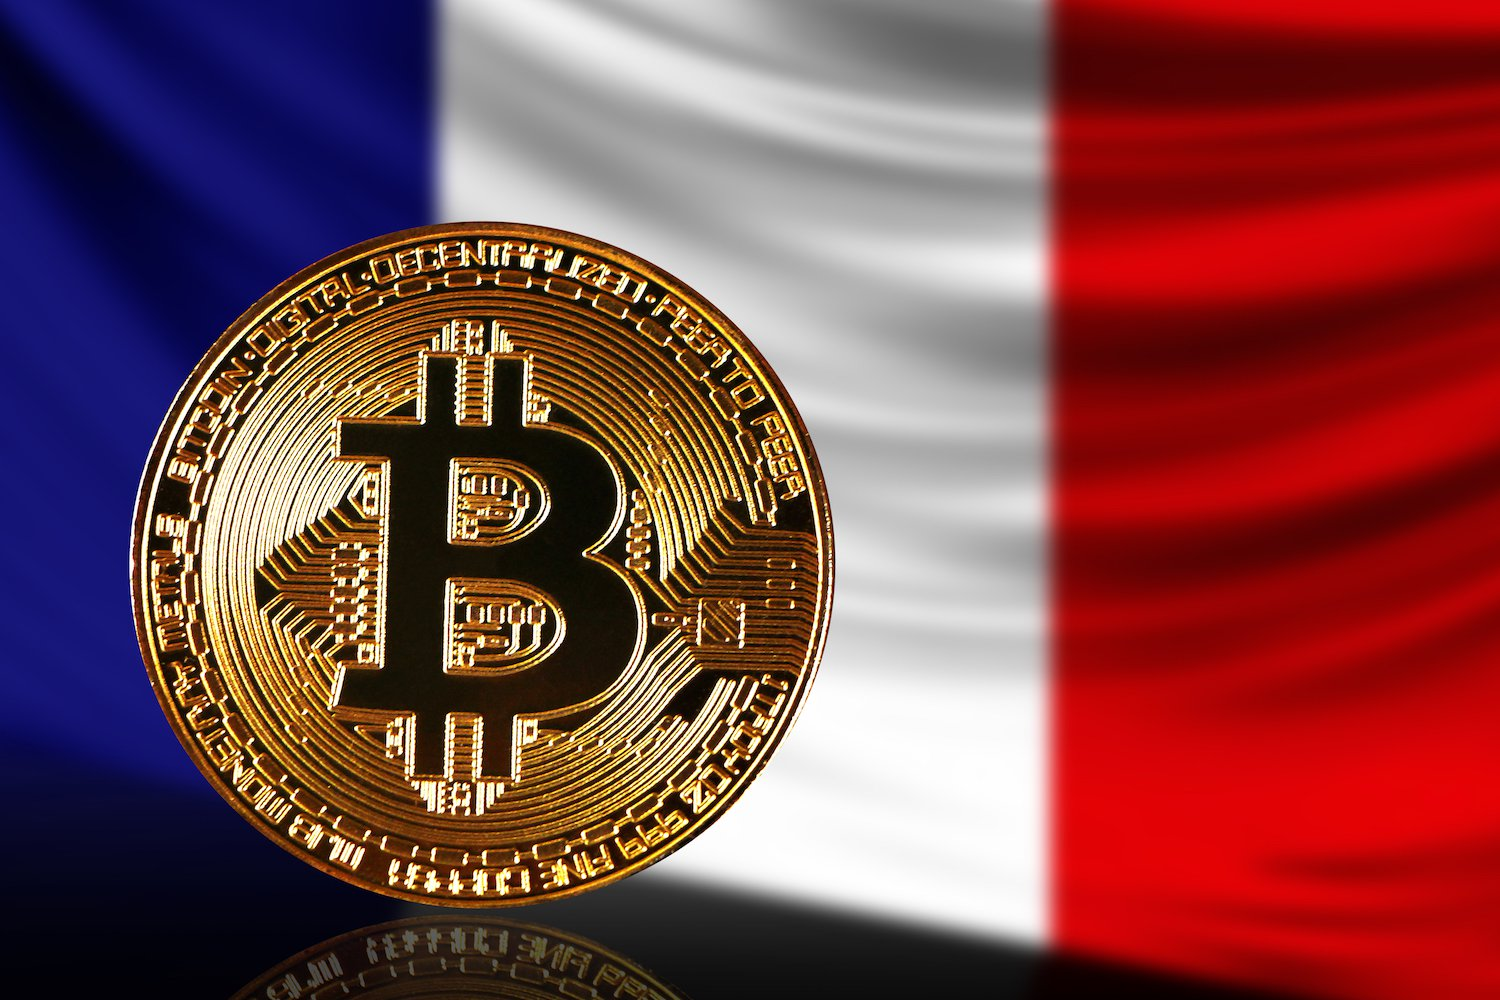 French Regulator Says No to Online Crypto Derivatives Ads